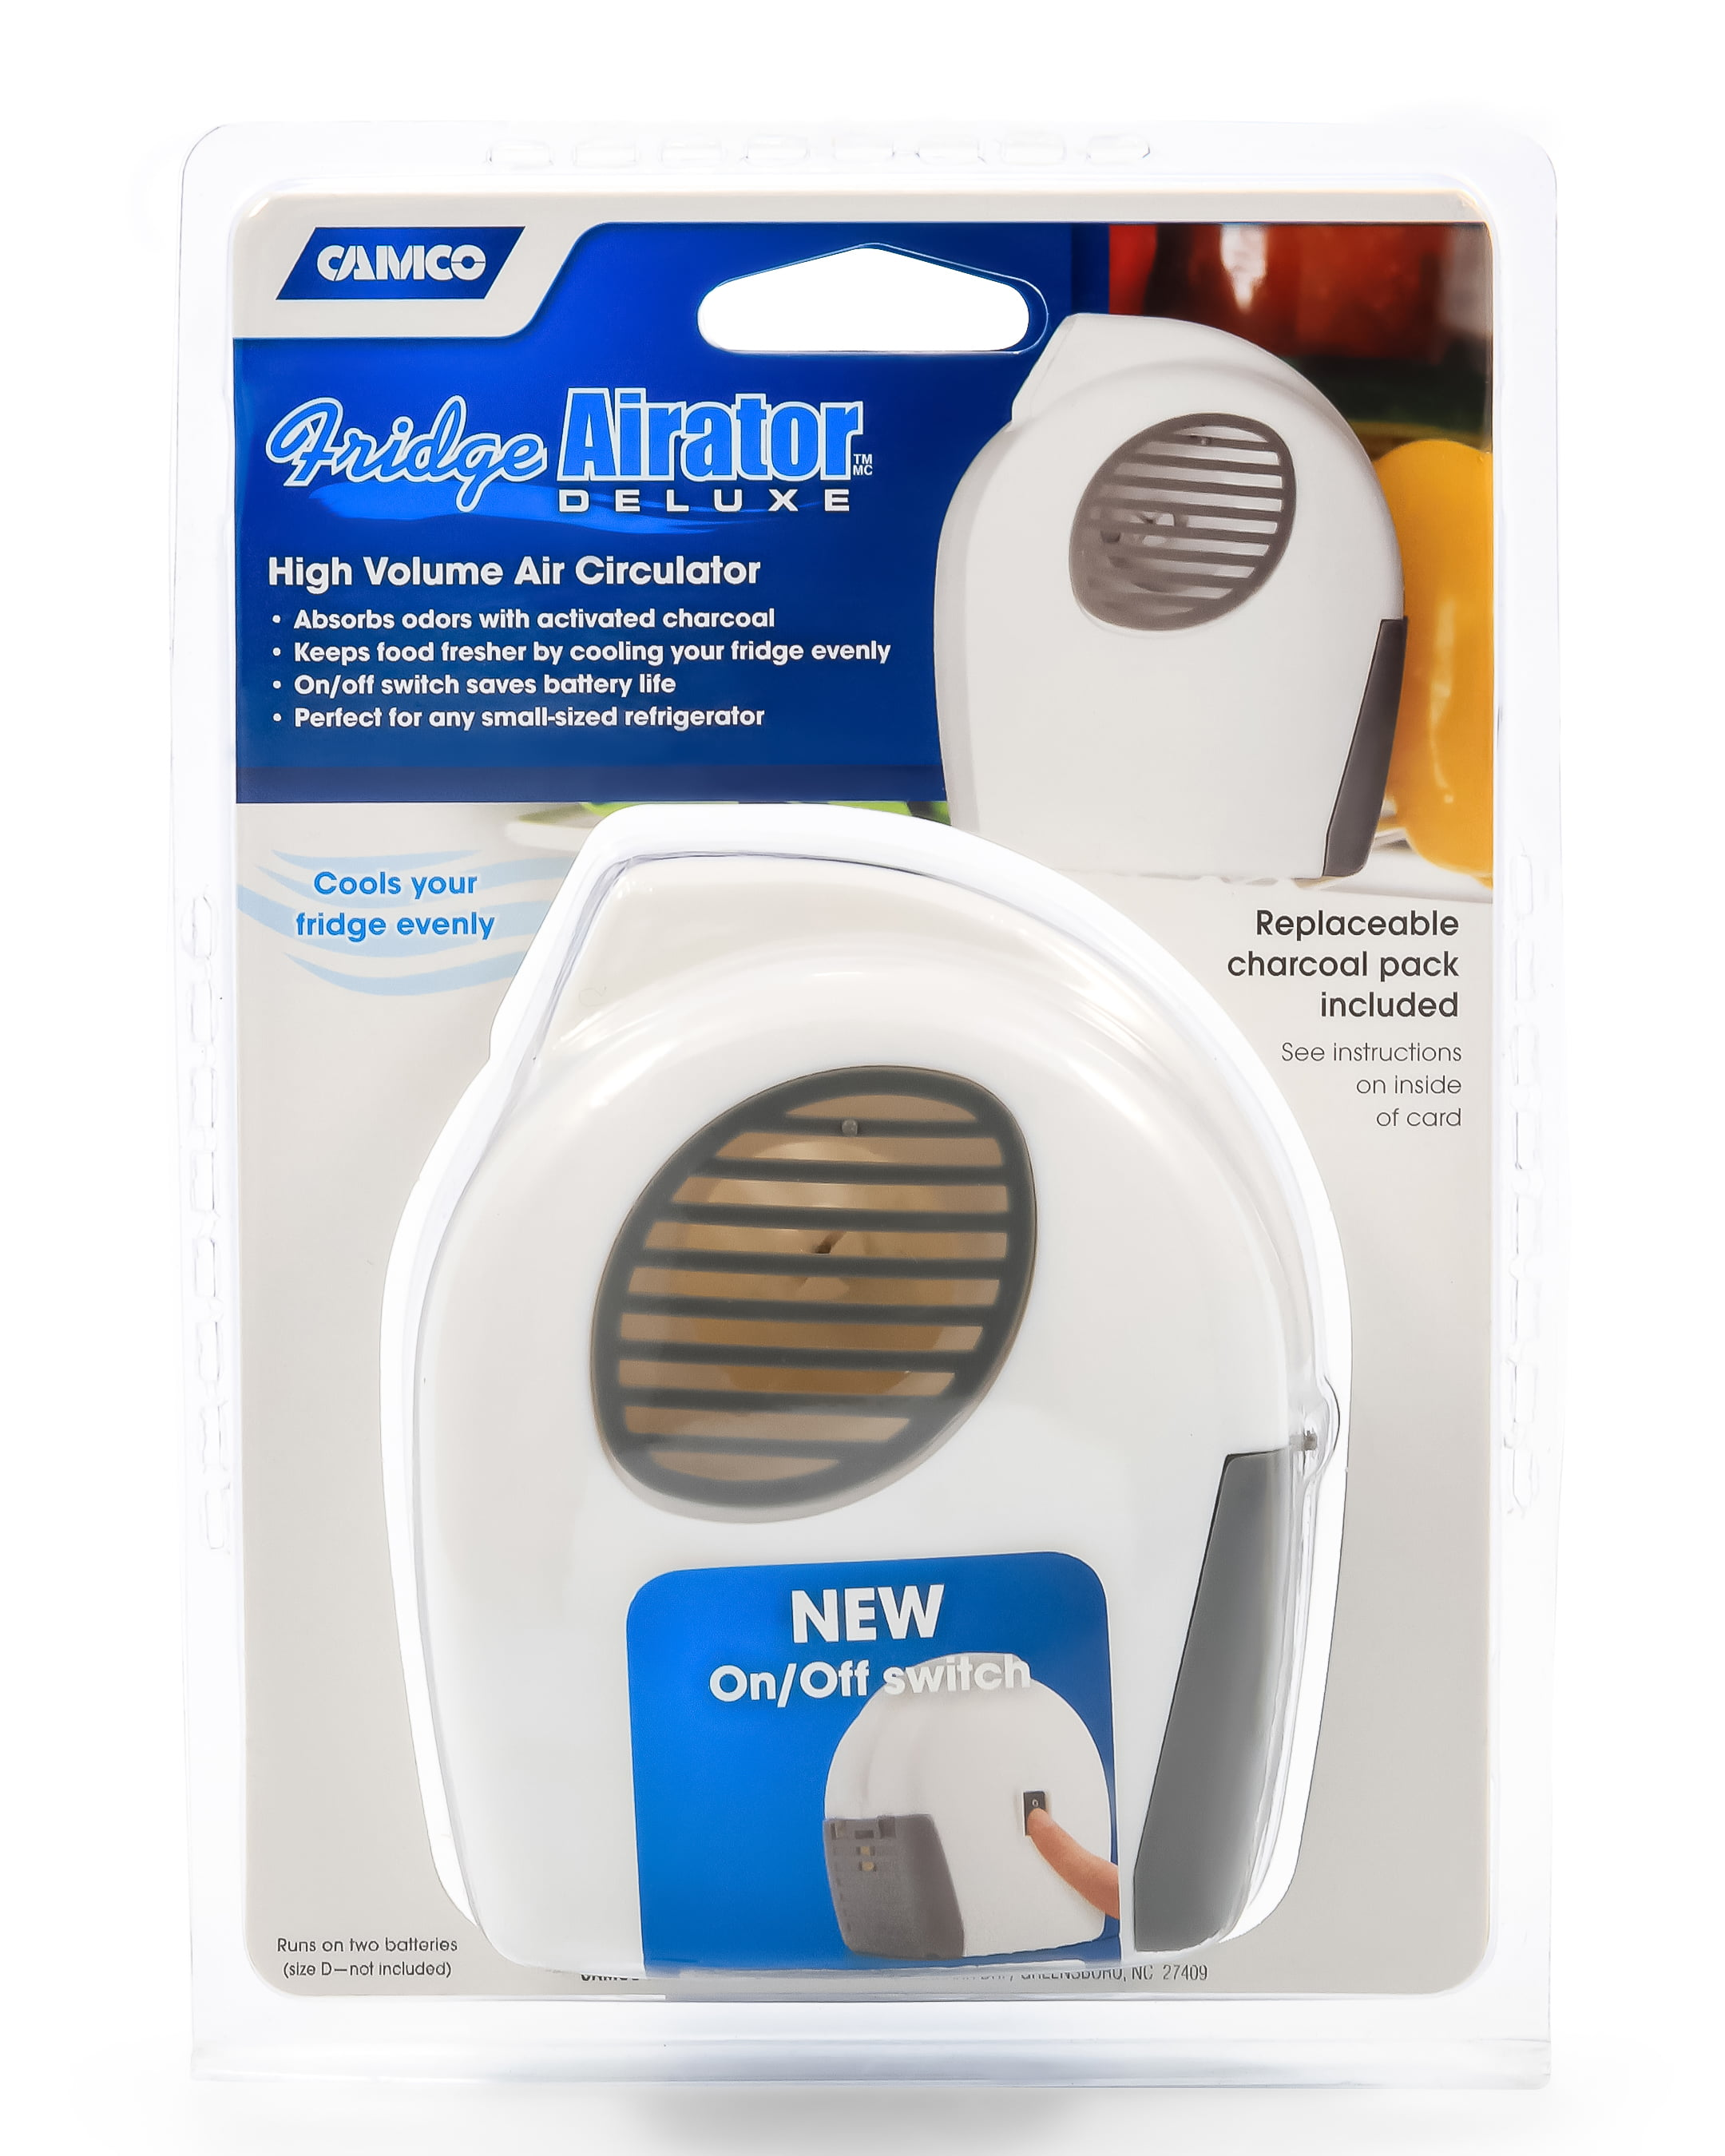 Camco Fridge Airator with On/Off Switch - Absorbs Refrigerator Odors and  Smells, Space Efficient Compact Design, Maintains Consistent RV Temperature